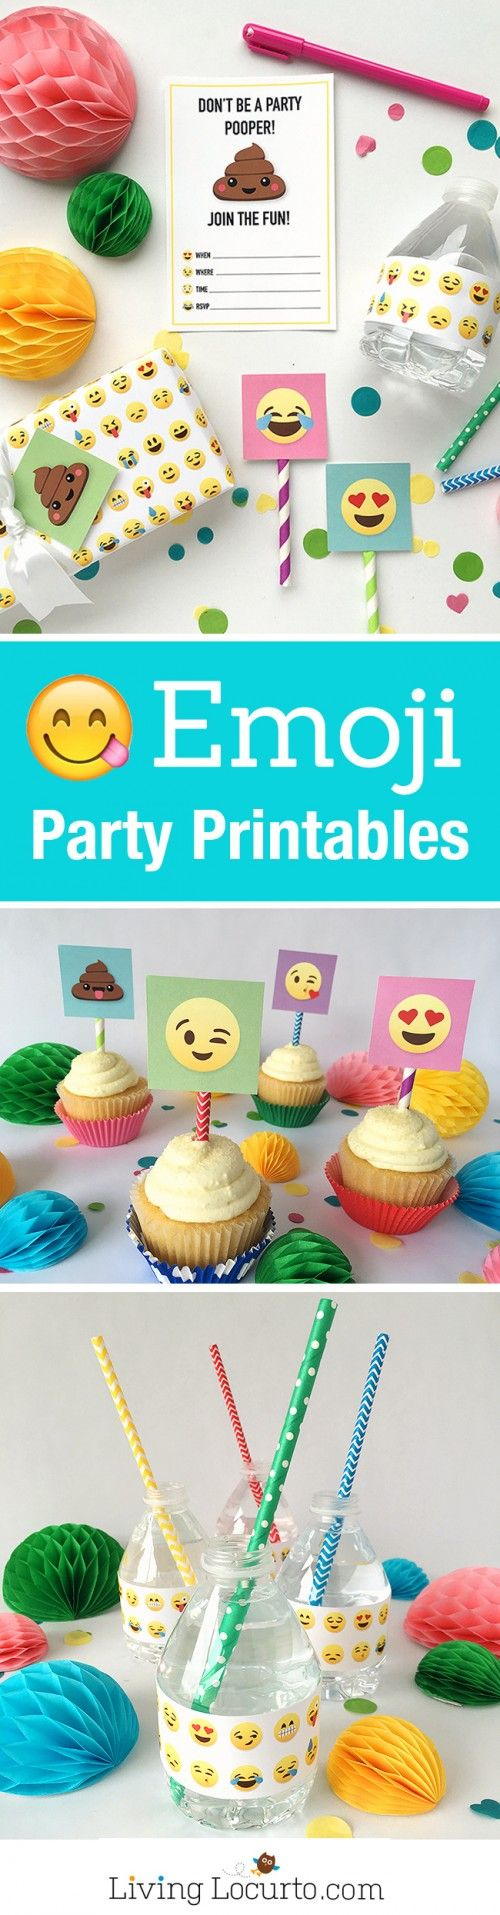 Emoji Party Ideas! Colorful Free Party Printables perfect for any Emoji Fan. Emoji Poop Invitations, Tags, Water Bottles and Gift Wrap. Emoji birthday party fun. ~ LivingLocurto.com